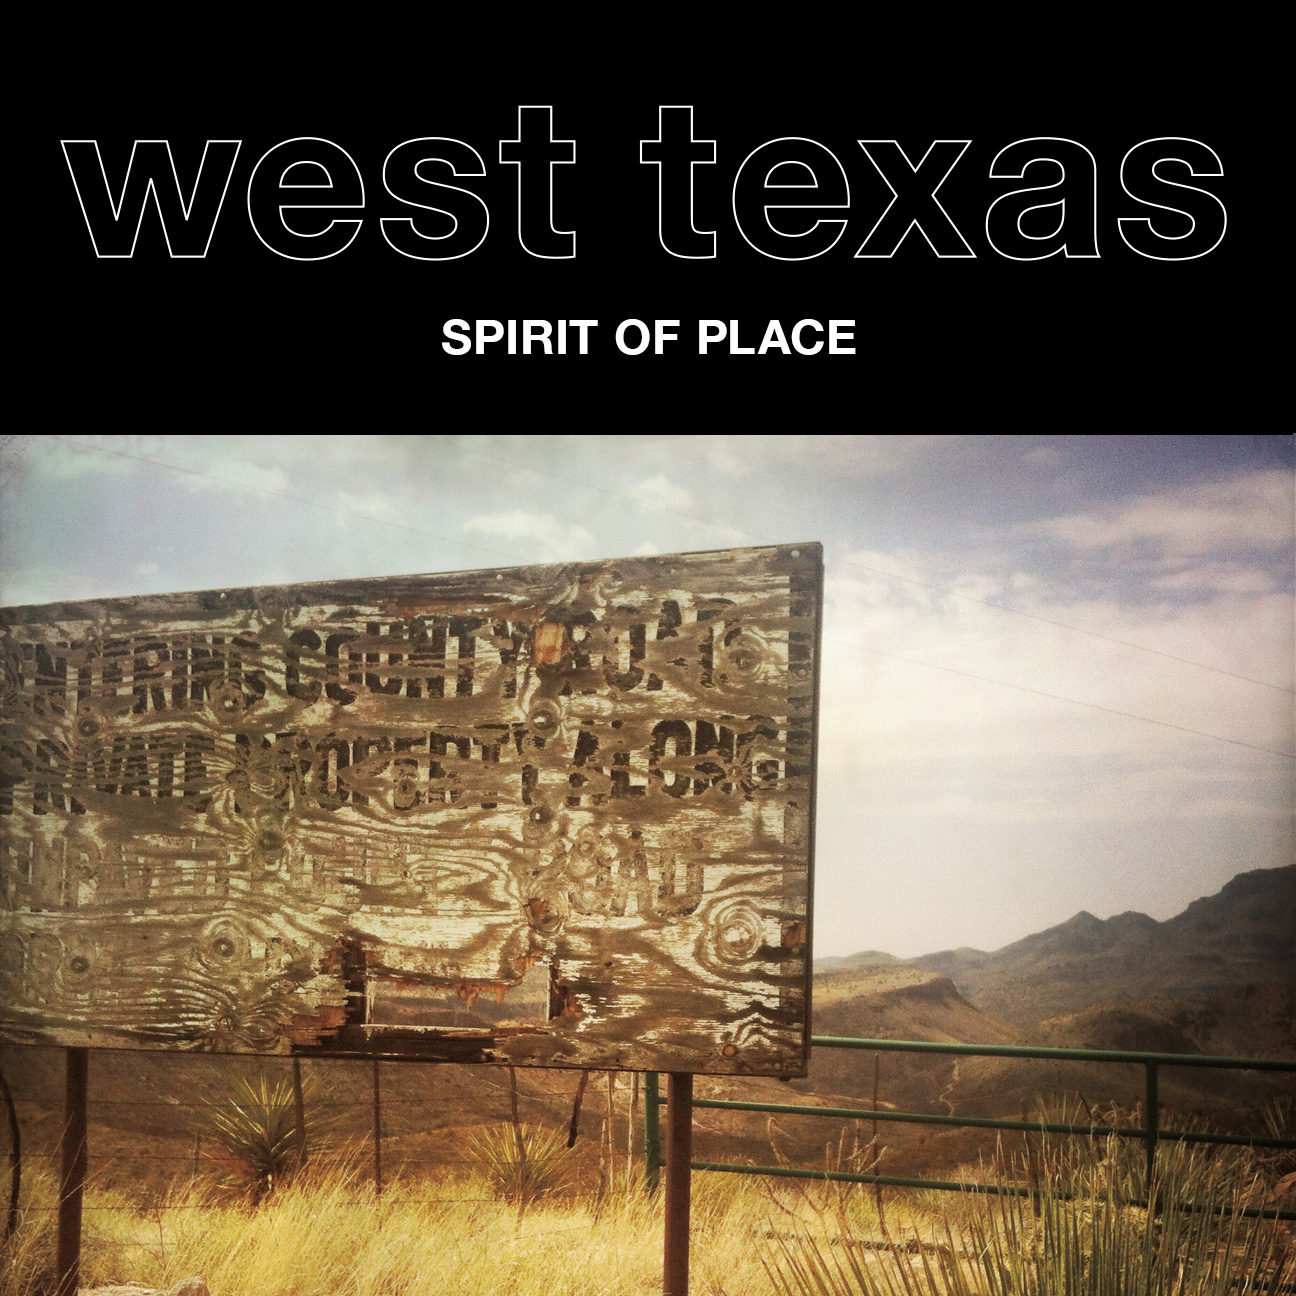 West Texas promo image_face1.jpg